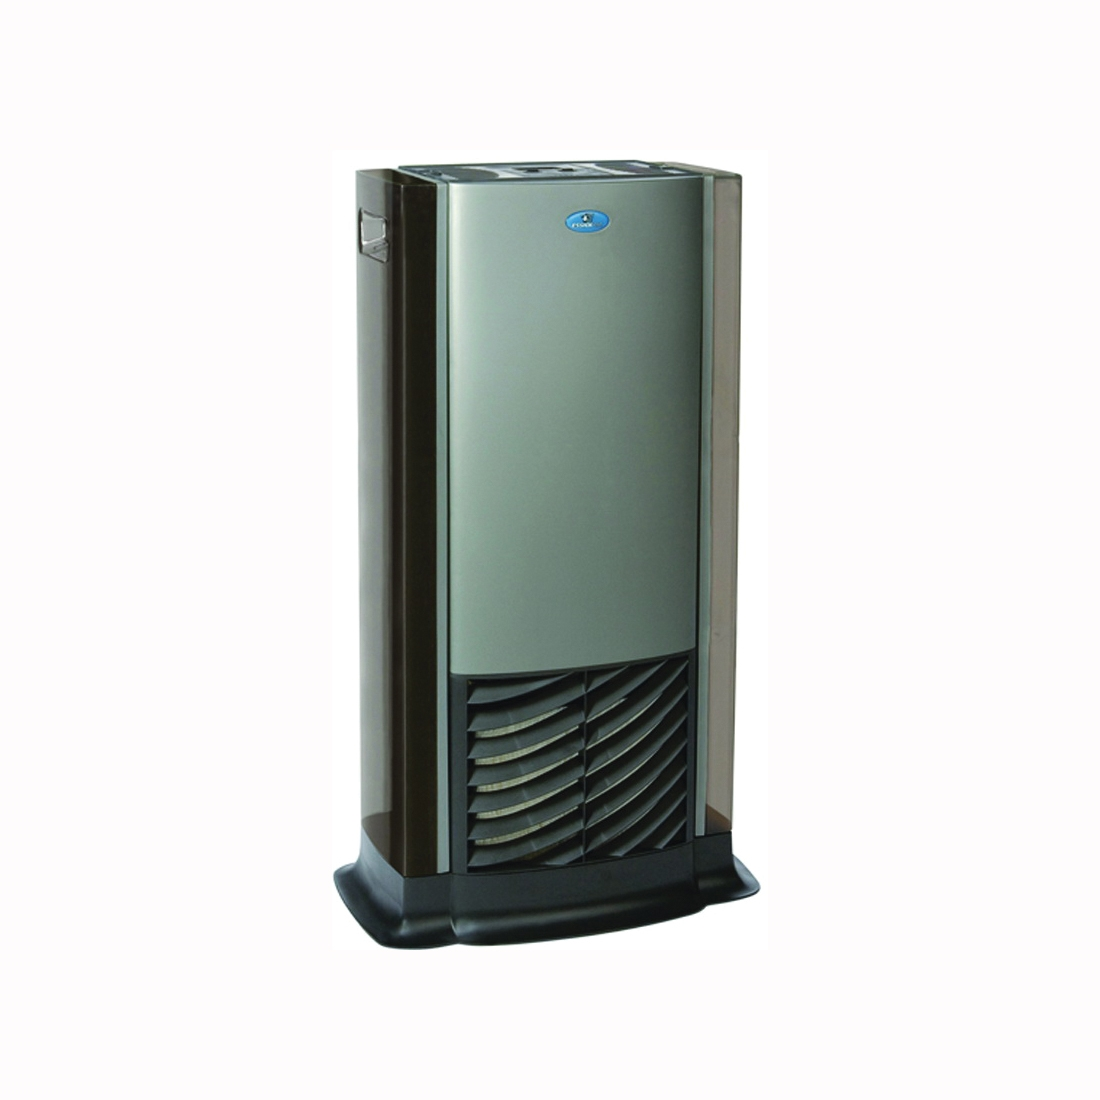 Picture of AIRCARE D46 720 Tower Humidifier, 120 V, 4-Speed, 1250 sq-ft Coverage Area, 2 gal Tank, Digital Control